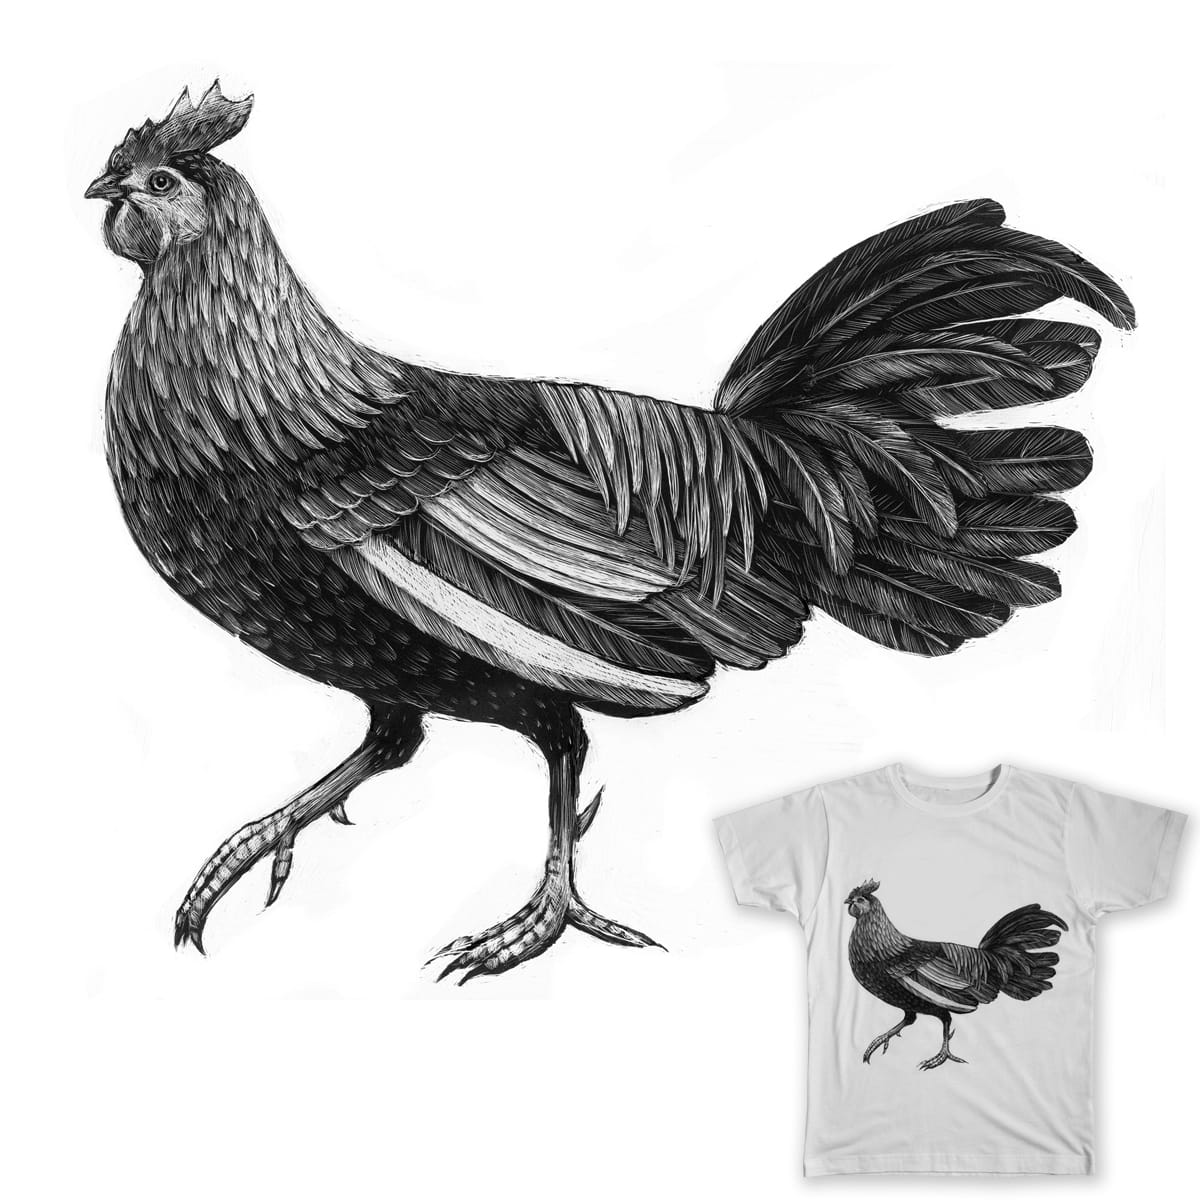 Rooster by Lumichee on Threadless